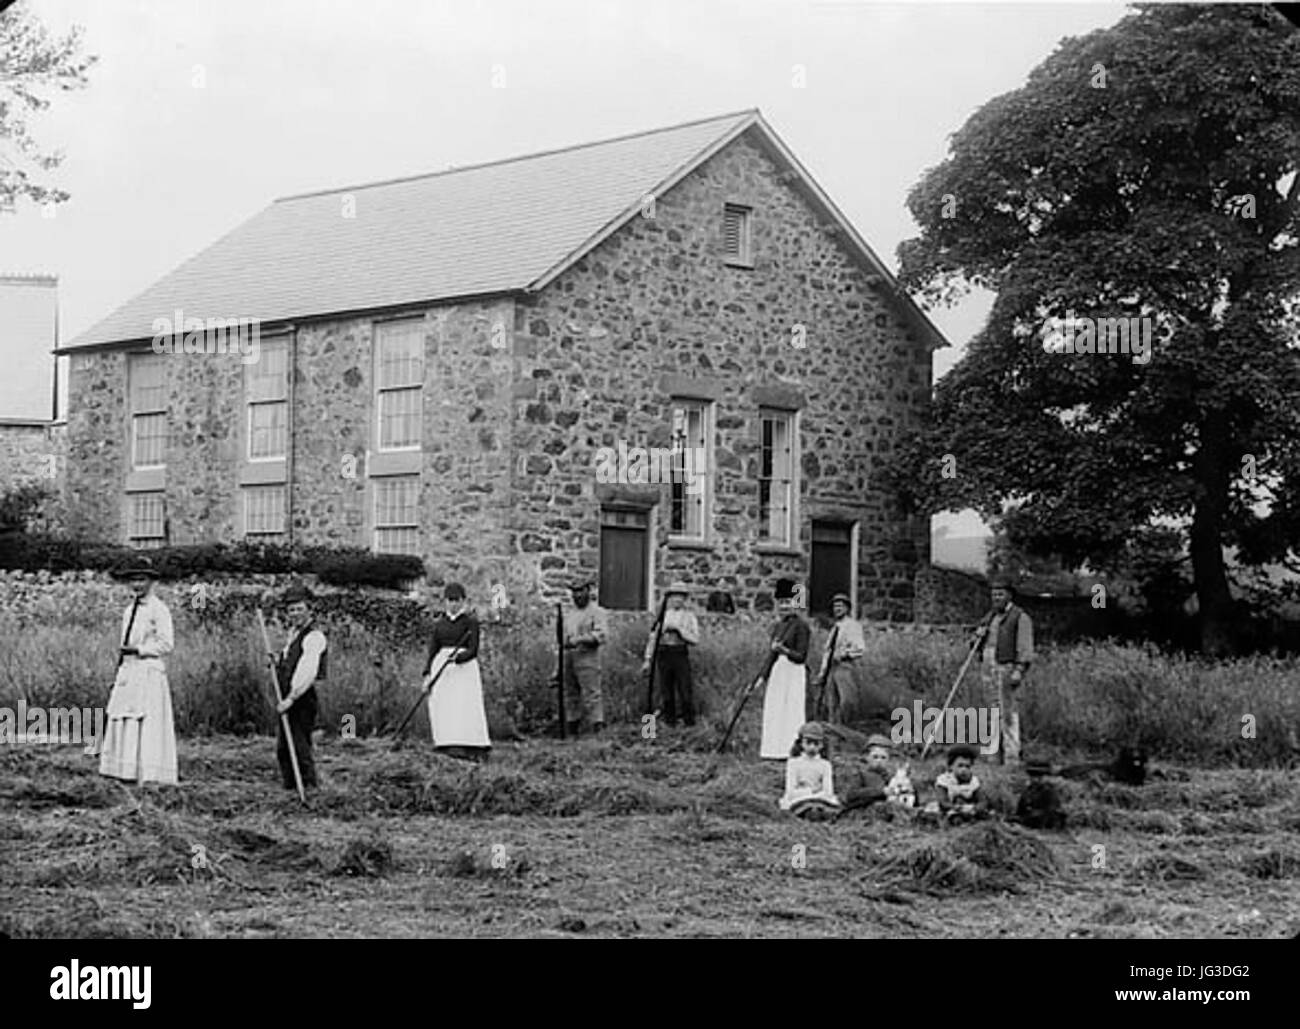 Hay-making outside the Calvinistic Methodist chapel Aber-erch NLW3363 2 - Stock Image